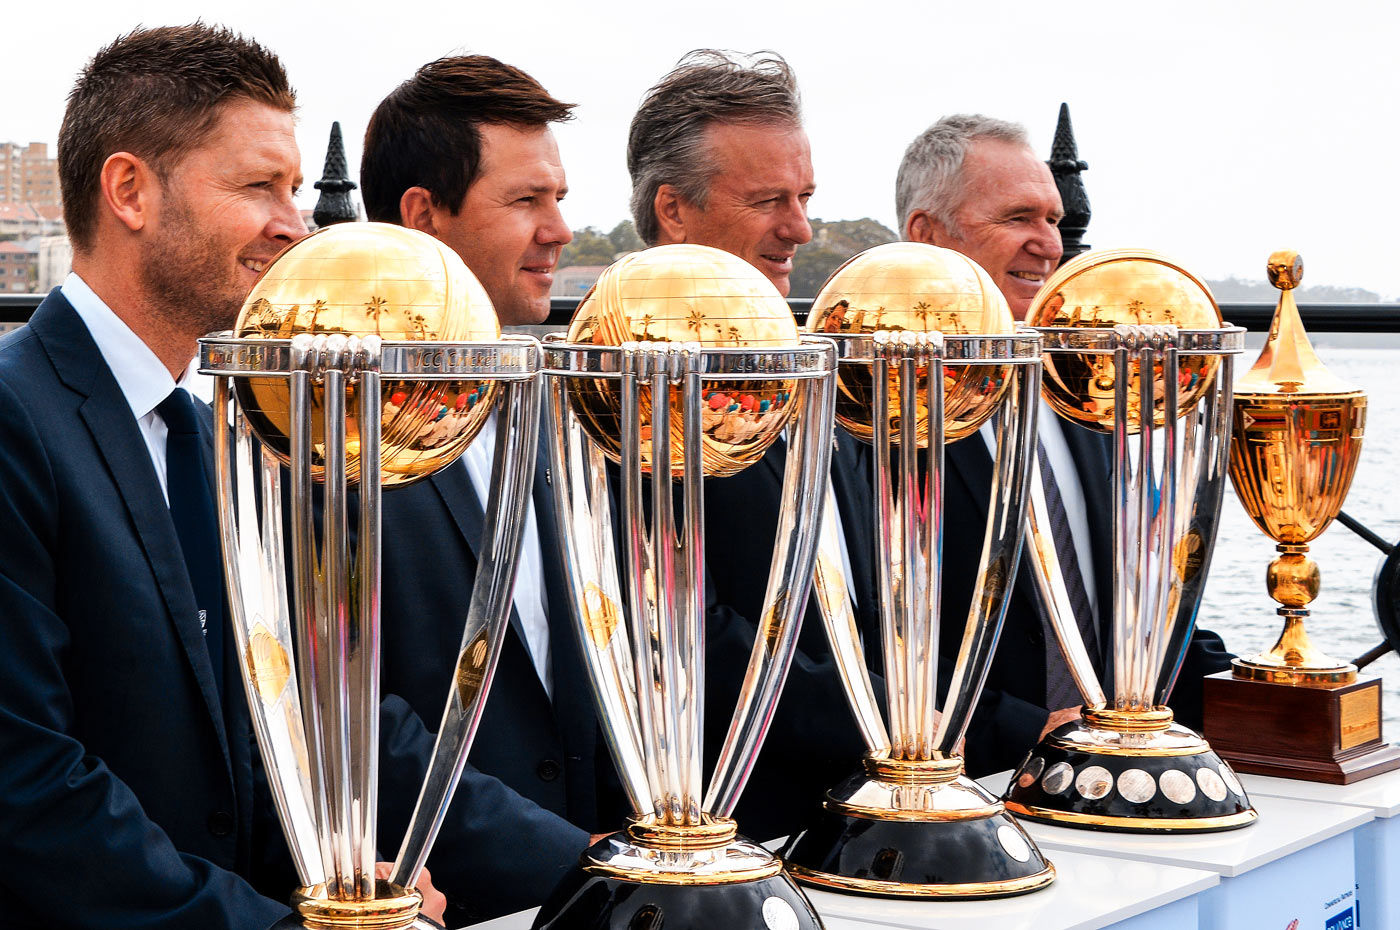 Ricky Ponting enjoyed three consecutive World Cup wins, captaining Australia in two